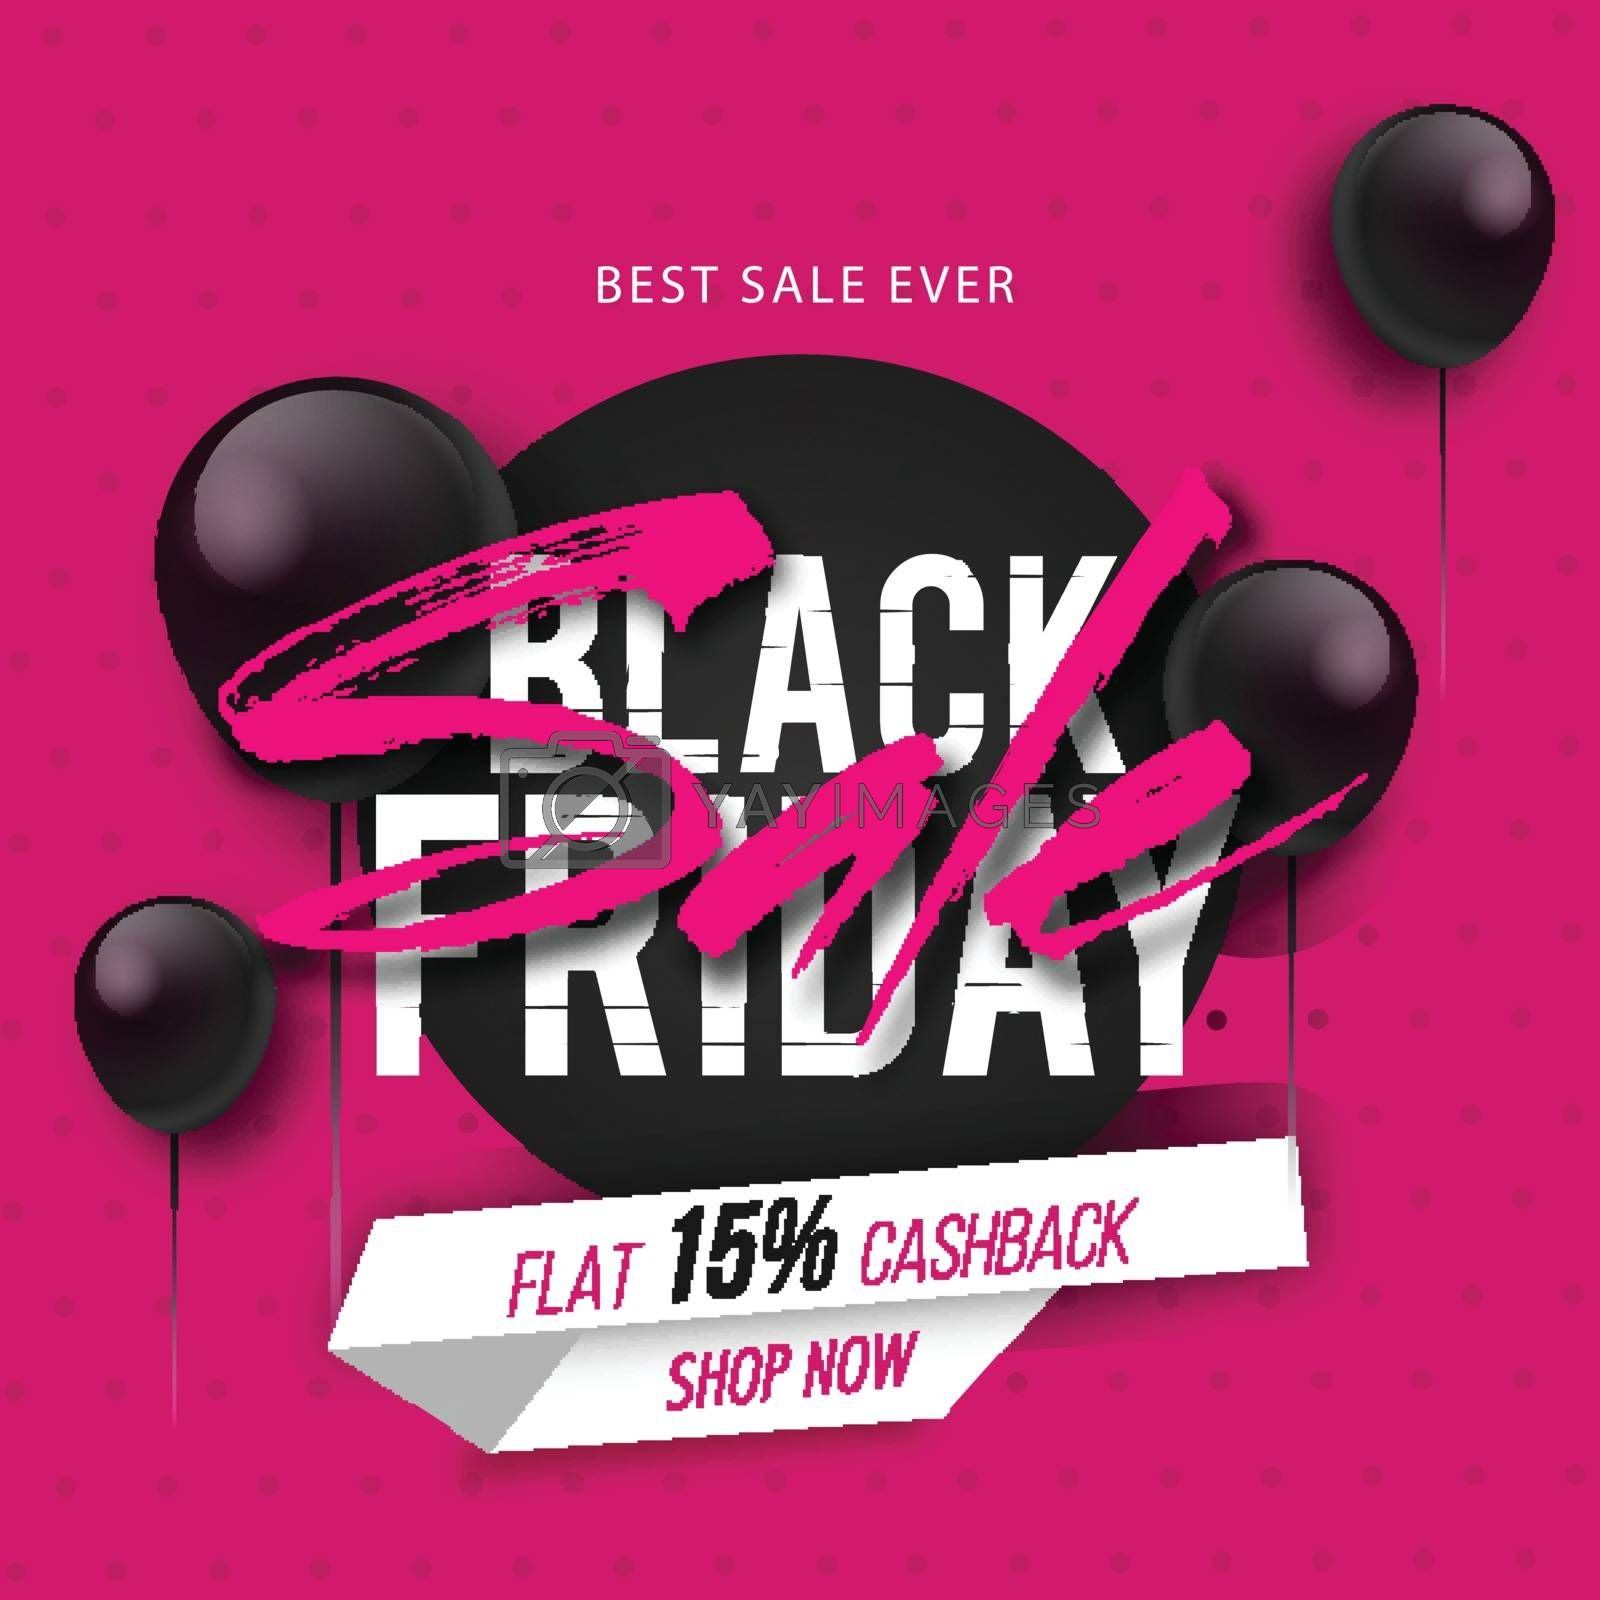 Black Friday Sale banner or poster design,15% discount offer on pink background decorated with balloons.